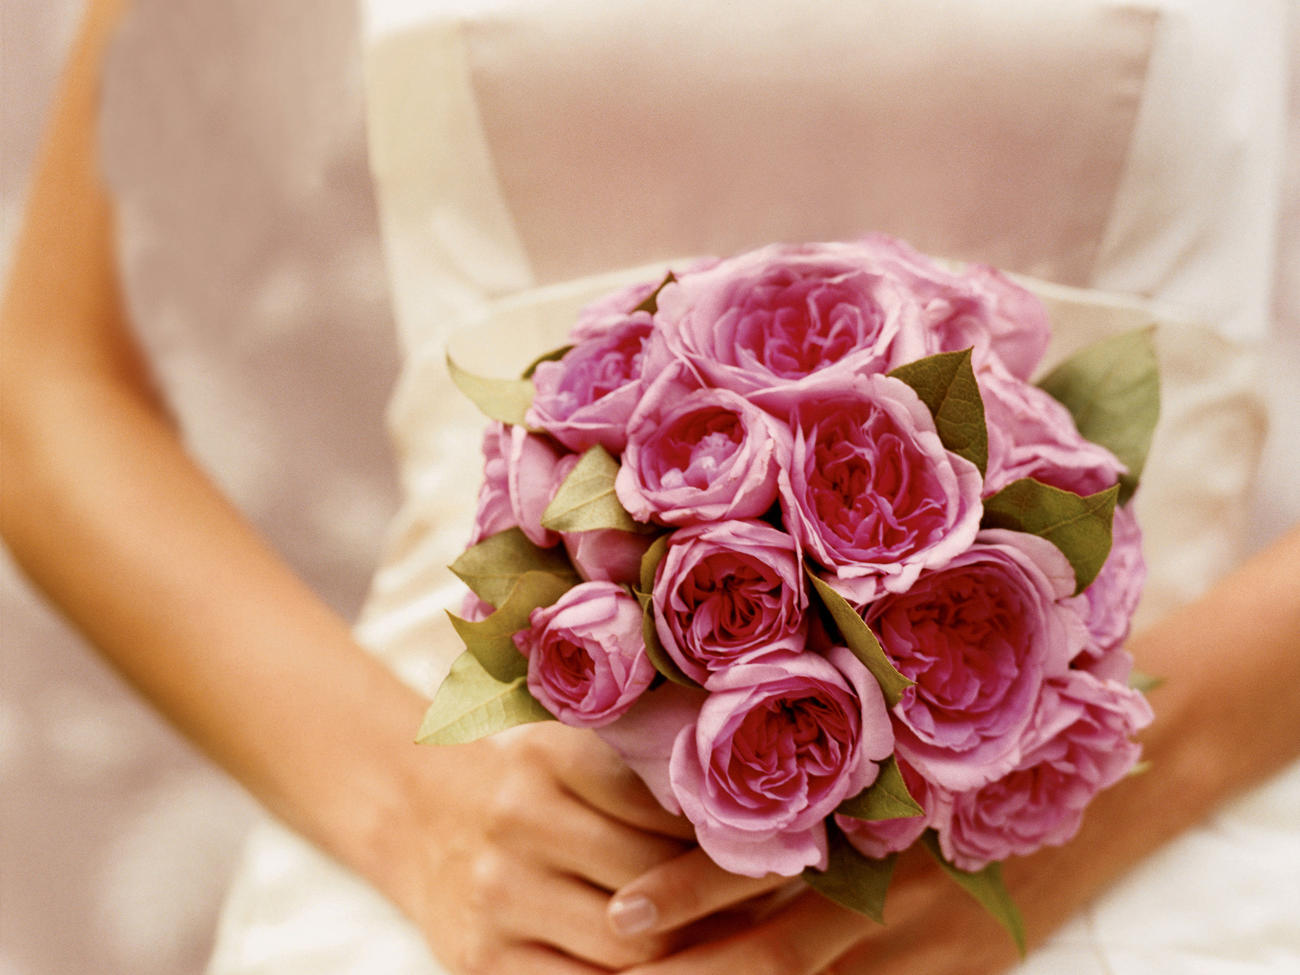 Simply Elegant Bridal Bouquets - Sunset Magazine